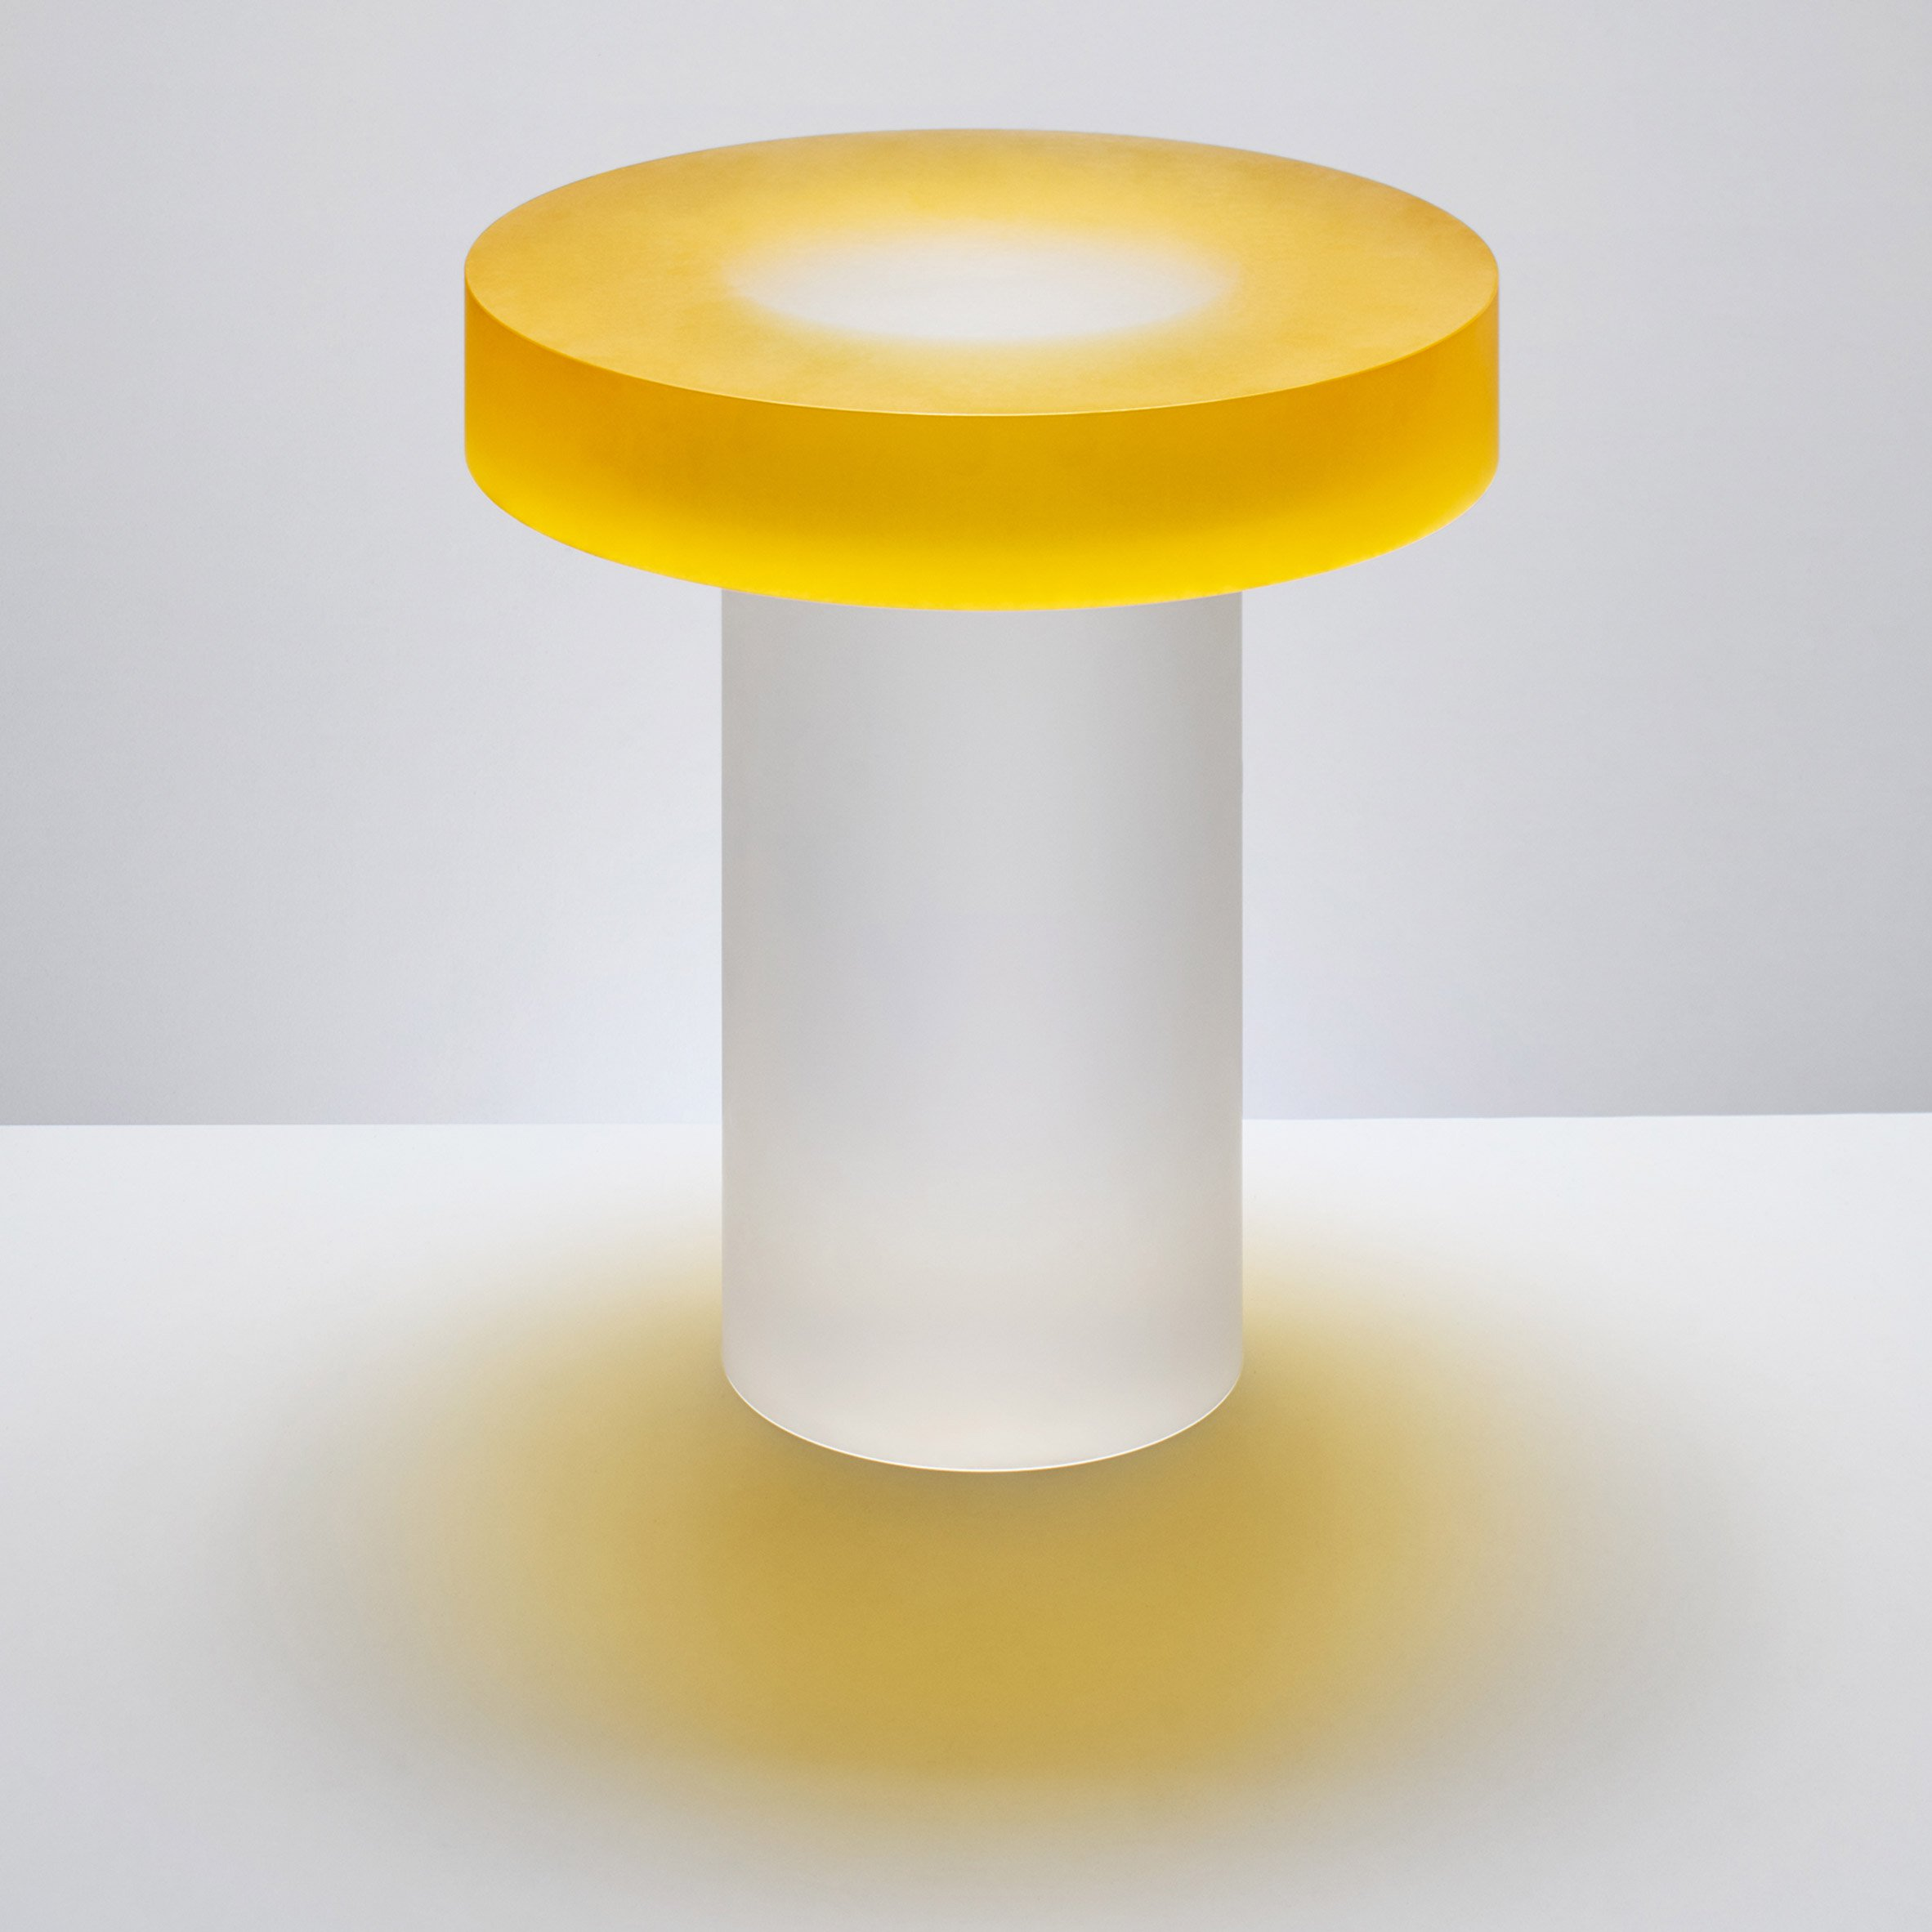 """candy-coloured resin candy-coloured resin Candy-coloured resin tables that """"challenge visual perception"""" block andy martin design furniture dezeen 2364 col 5"""